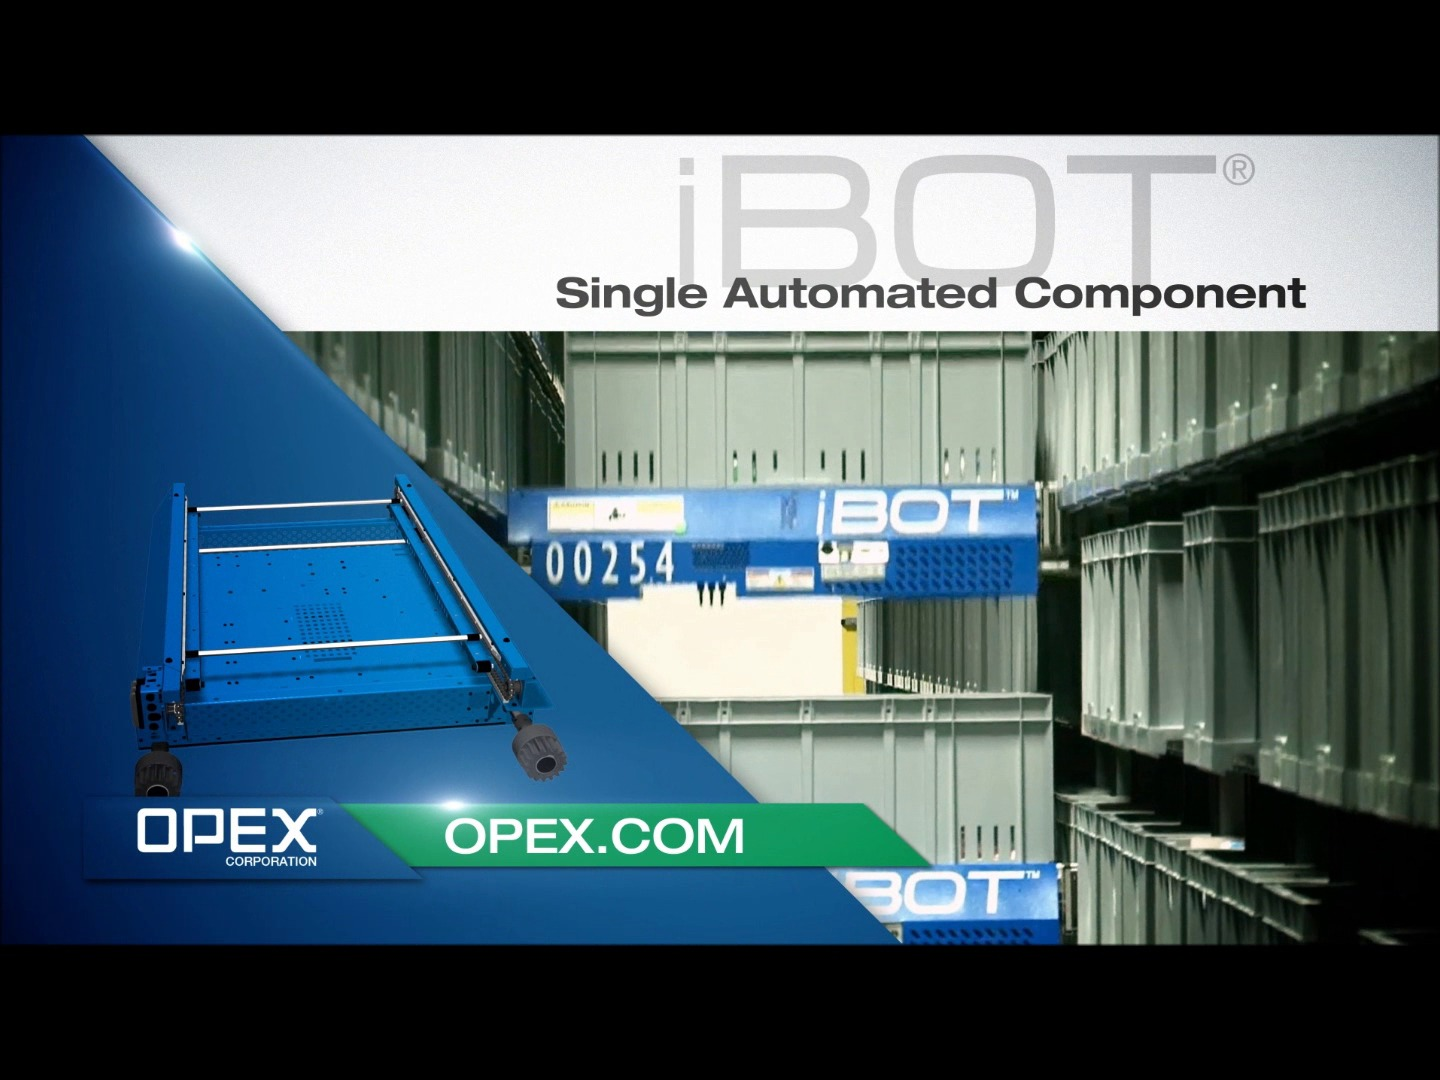 By eliminating complex frontend conveyors and transfer equipment typically associated with more traditional warehouse automation and by streamlining the order picking process, Perfect Pick makes robotic goods-to-person automation feasible for businesses that previously thought it was out of reach.